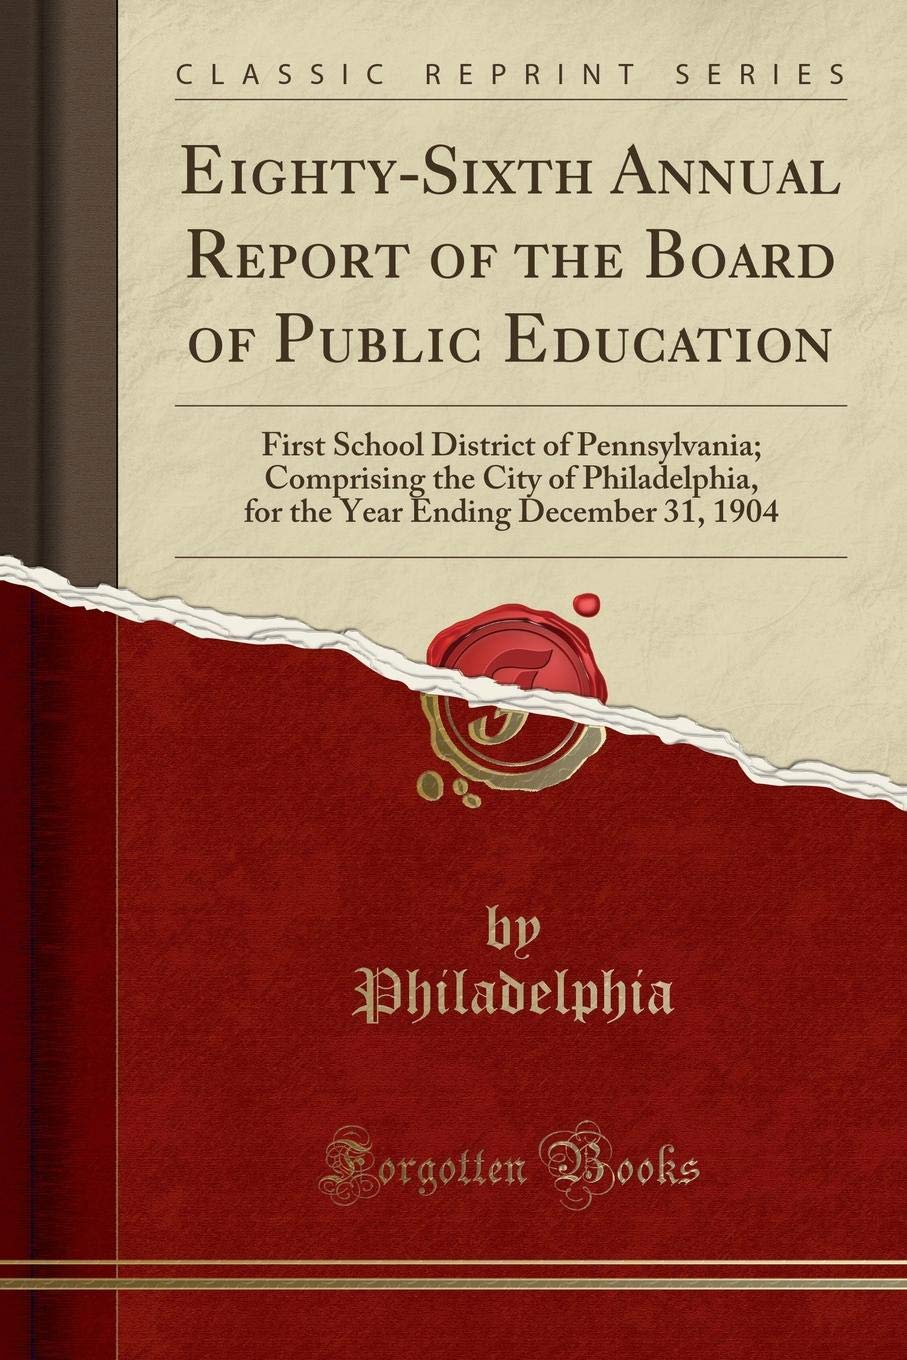 Eighty-Sixth Annual Report of the Board of Public Education: First School District of Pennsylvania; Comprising the City of Philadelphia, for the Year Ending December 31, 1904 (Classic Reprint) pdf epub